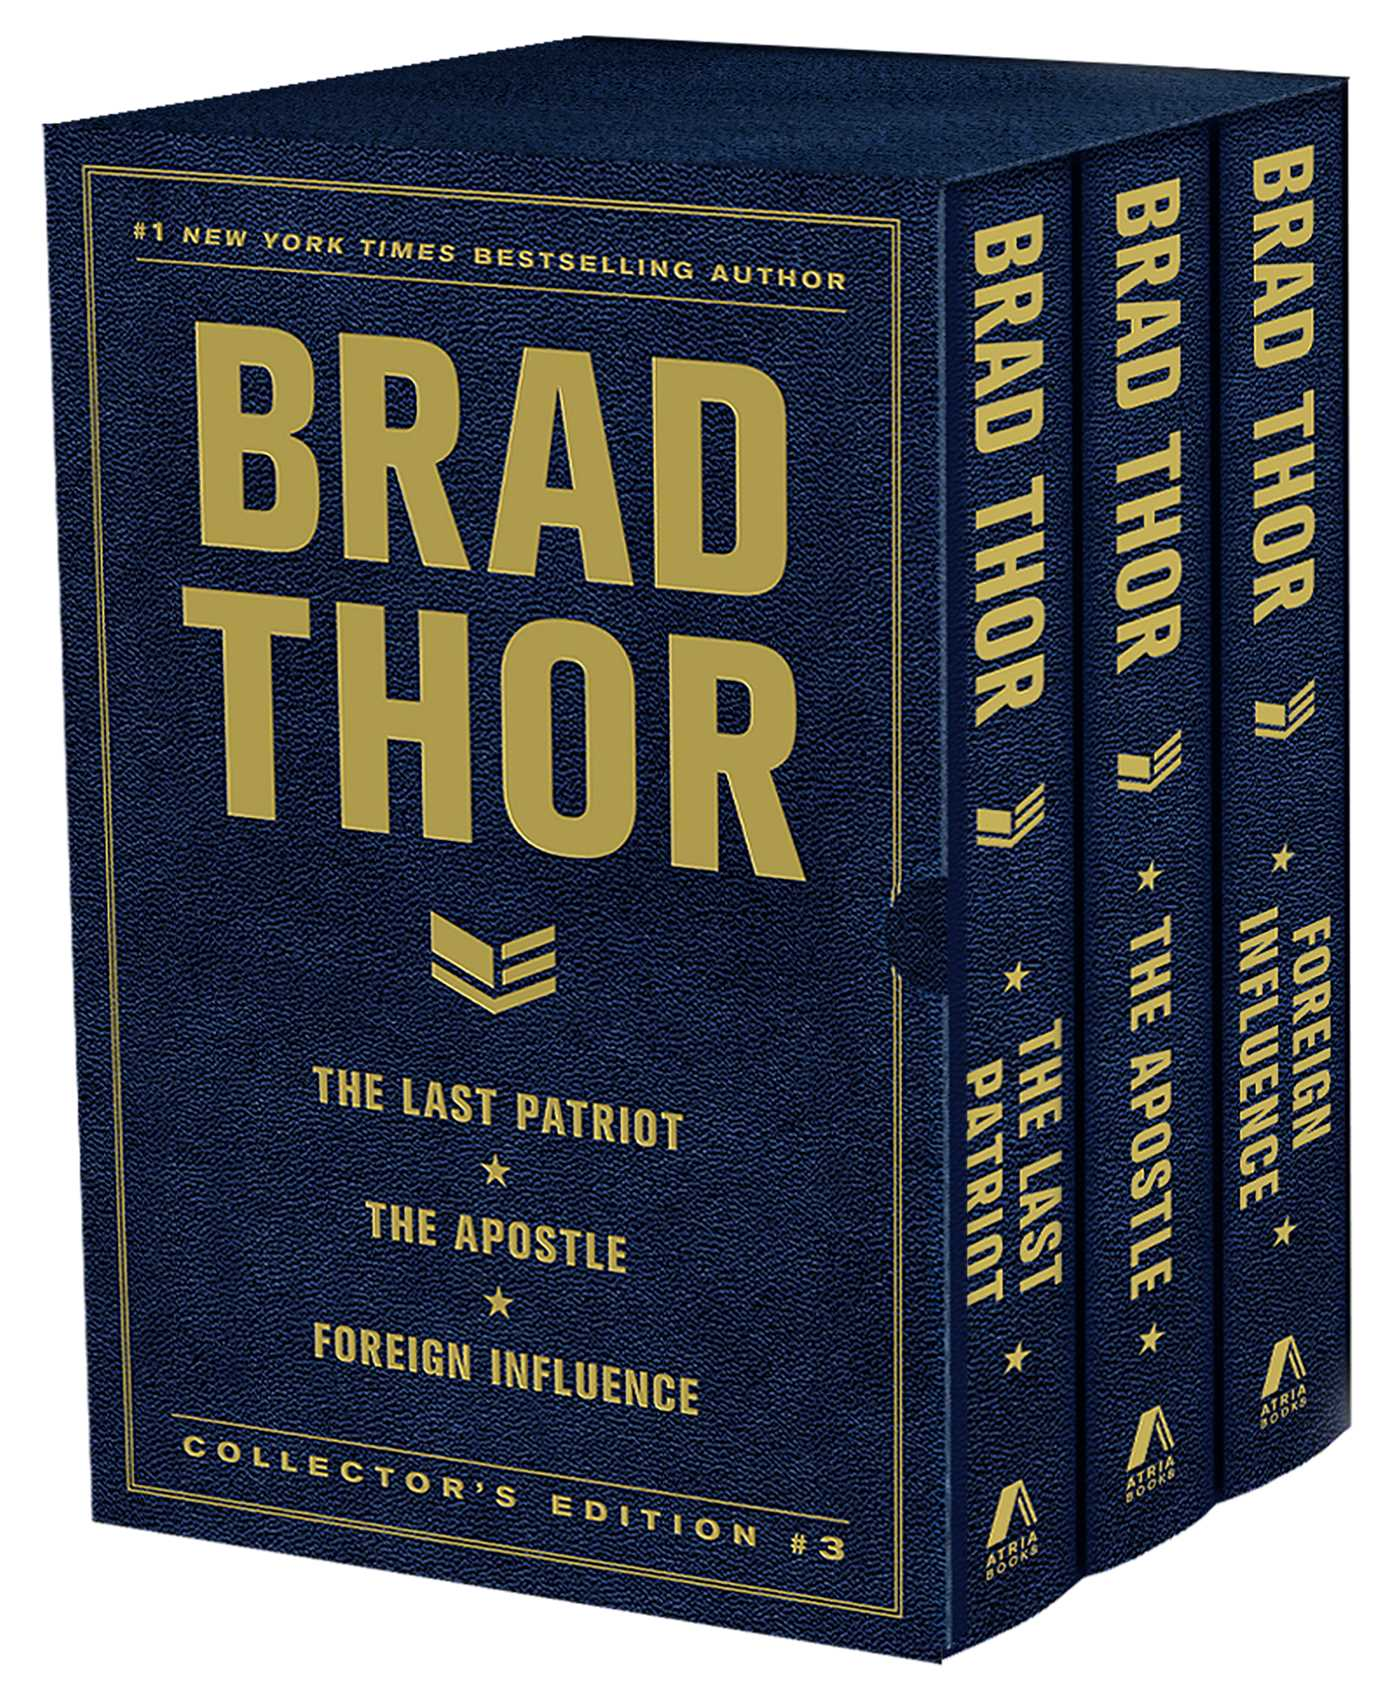 Brad thor collectors edition 3 9781476773643 hr